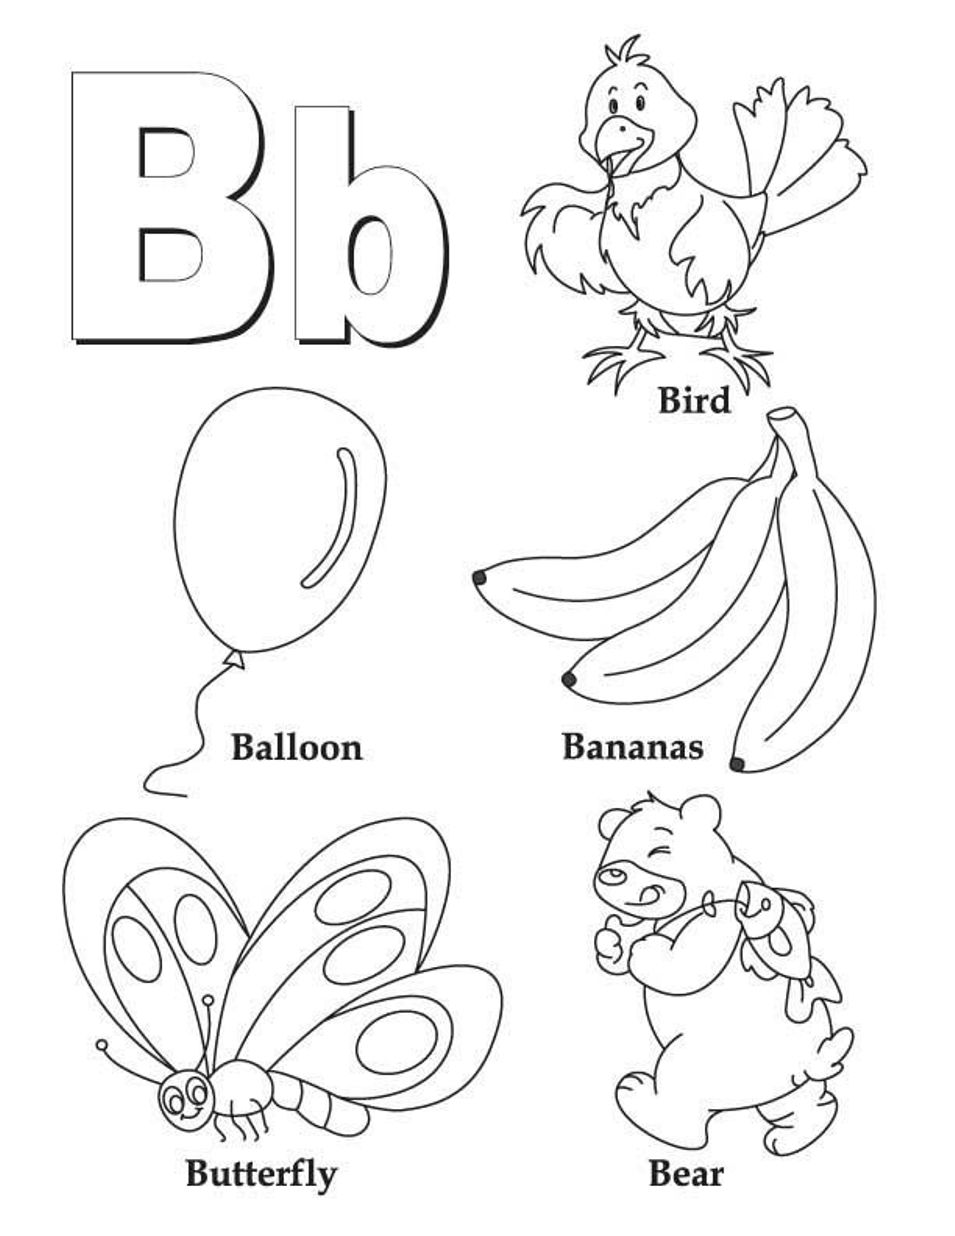 alphabet b coloring pages letter b coloring pages preschool and kindergarten coloring pages b alphabet